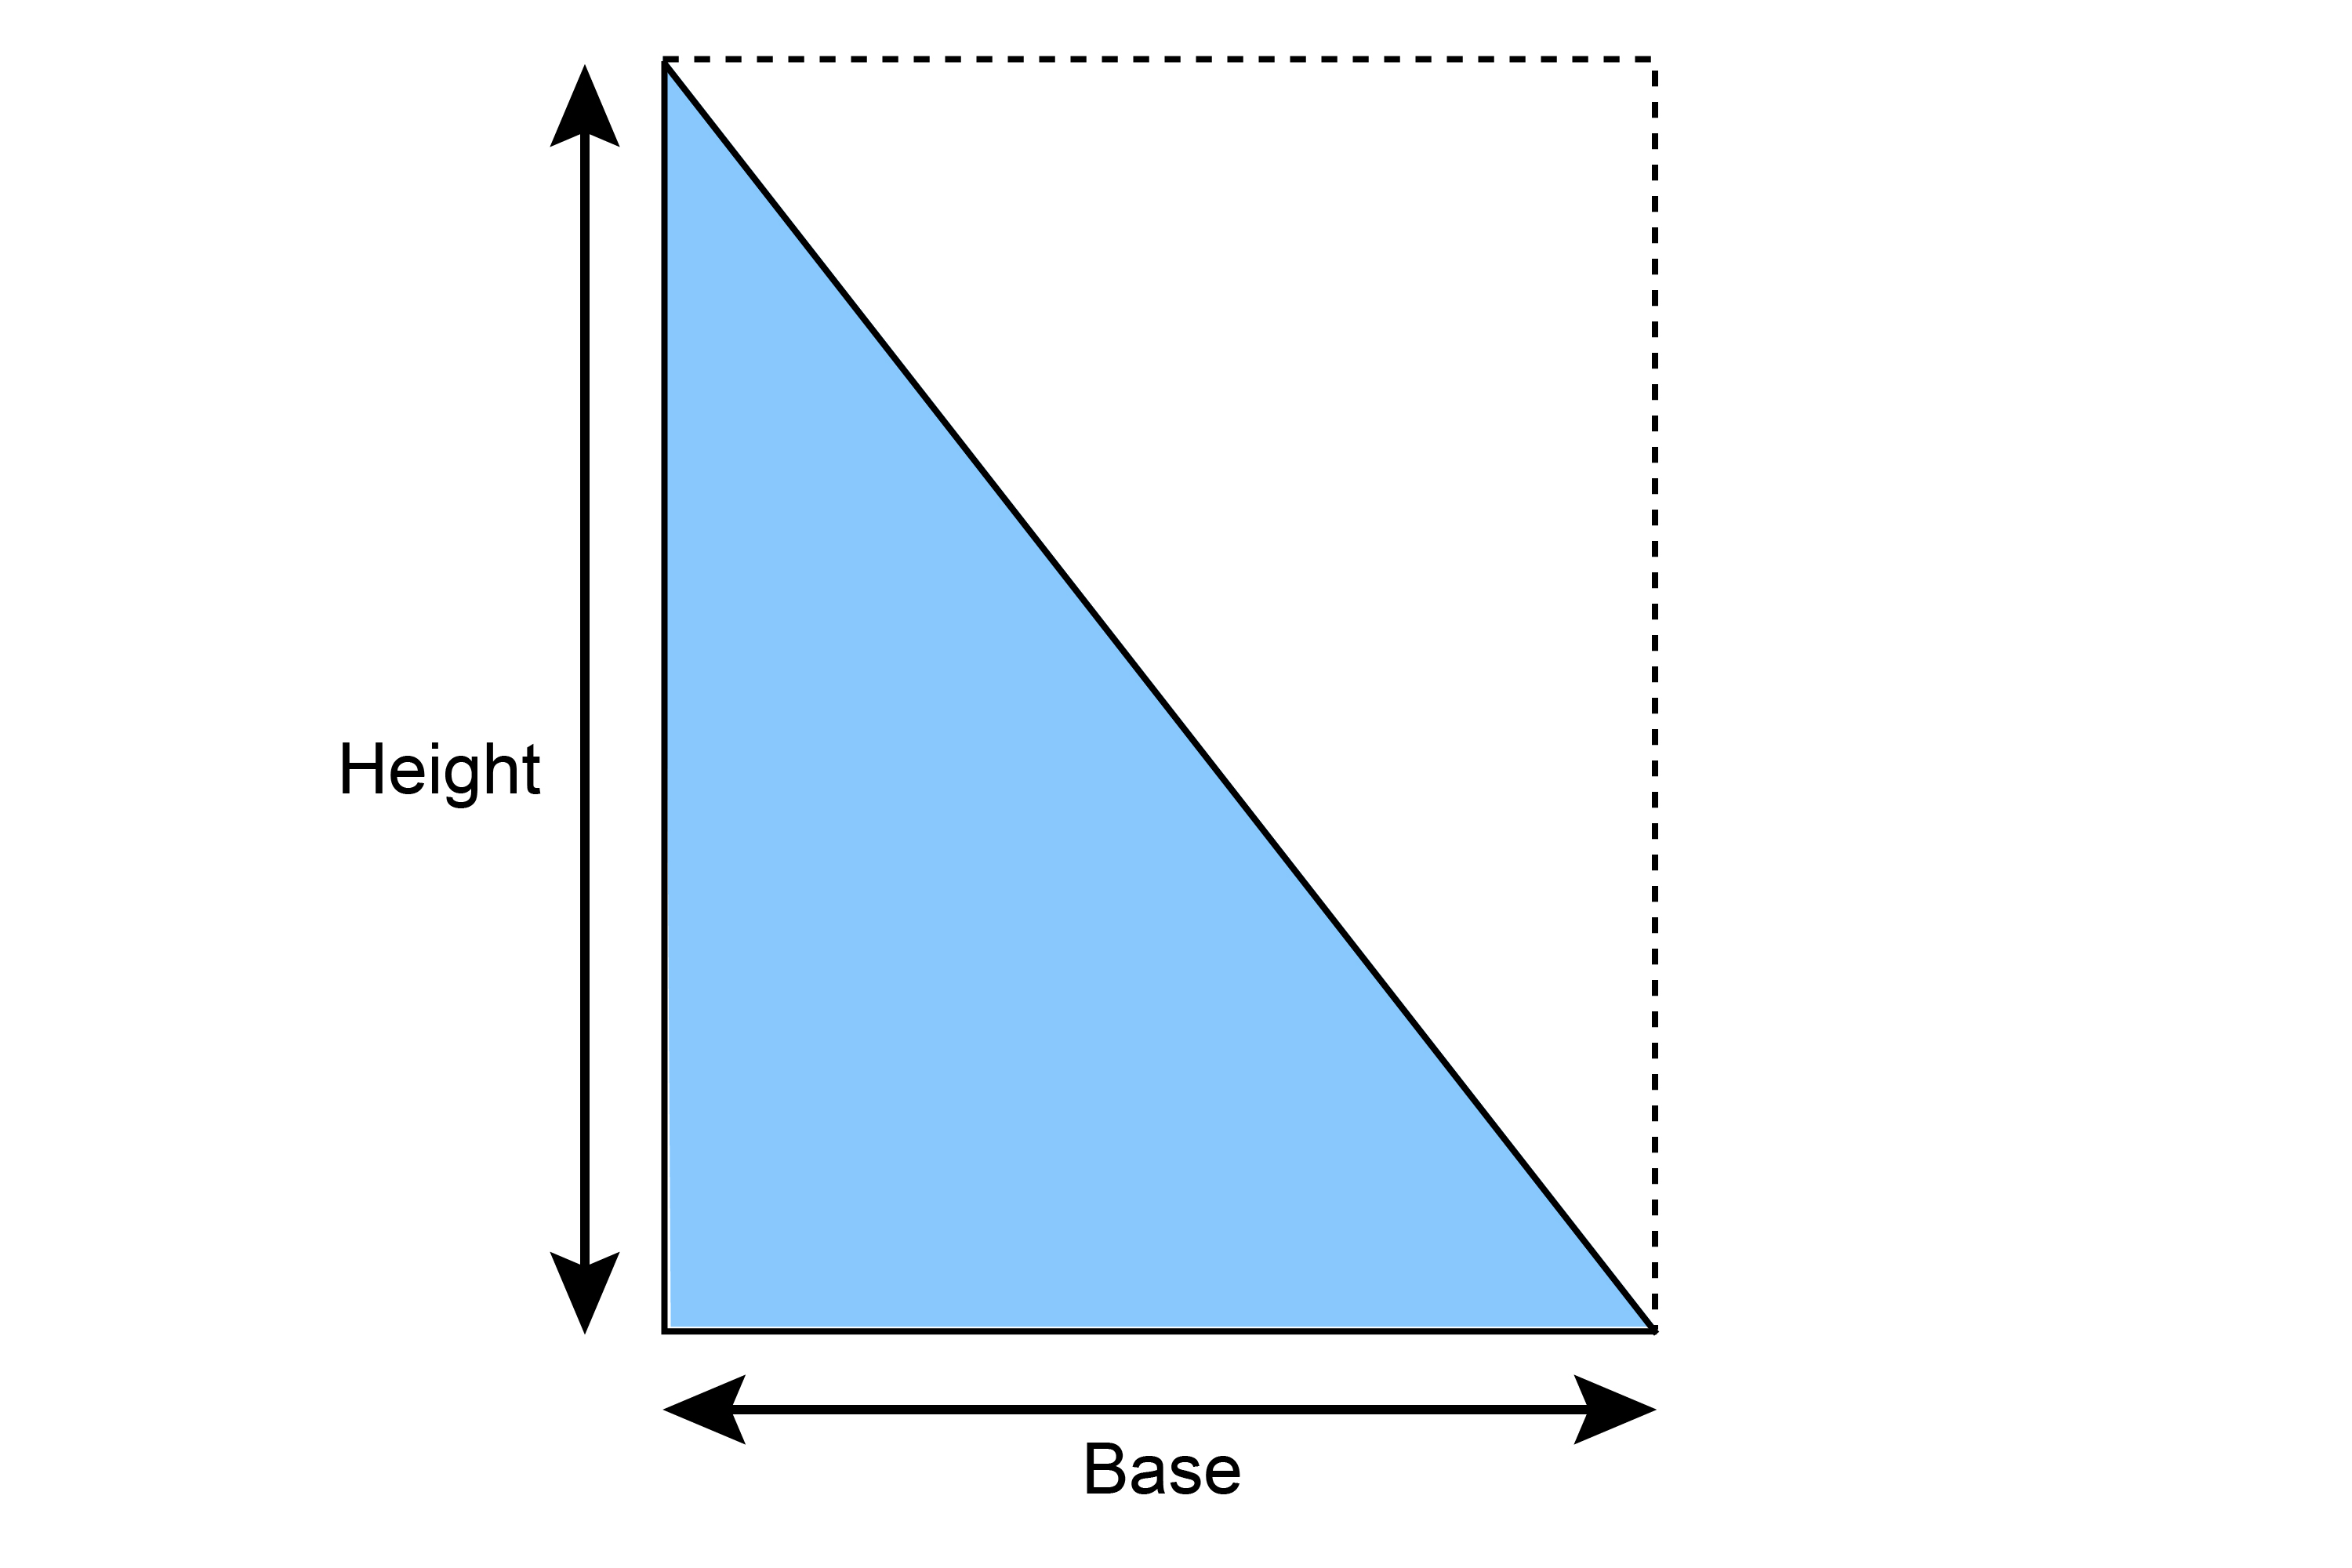 To find the area of a triangle its half base times height